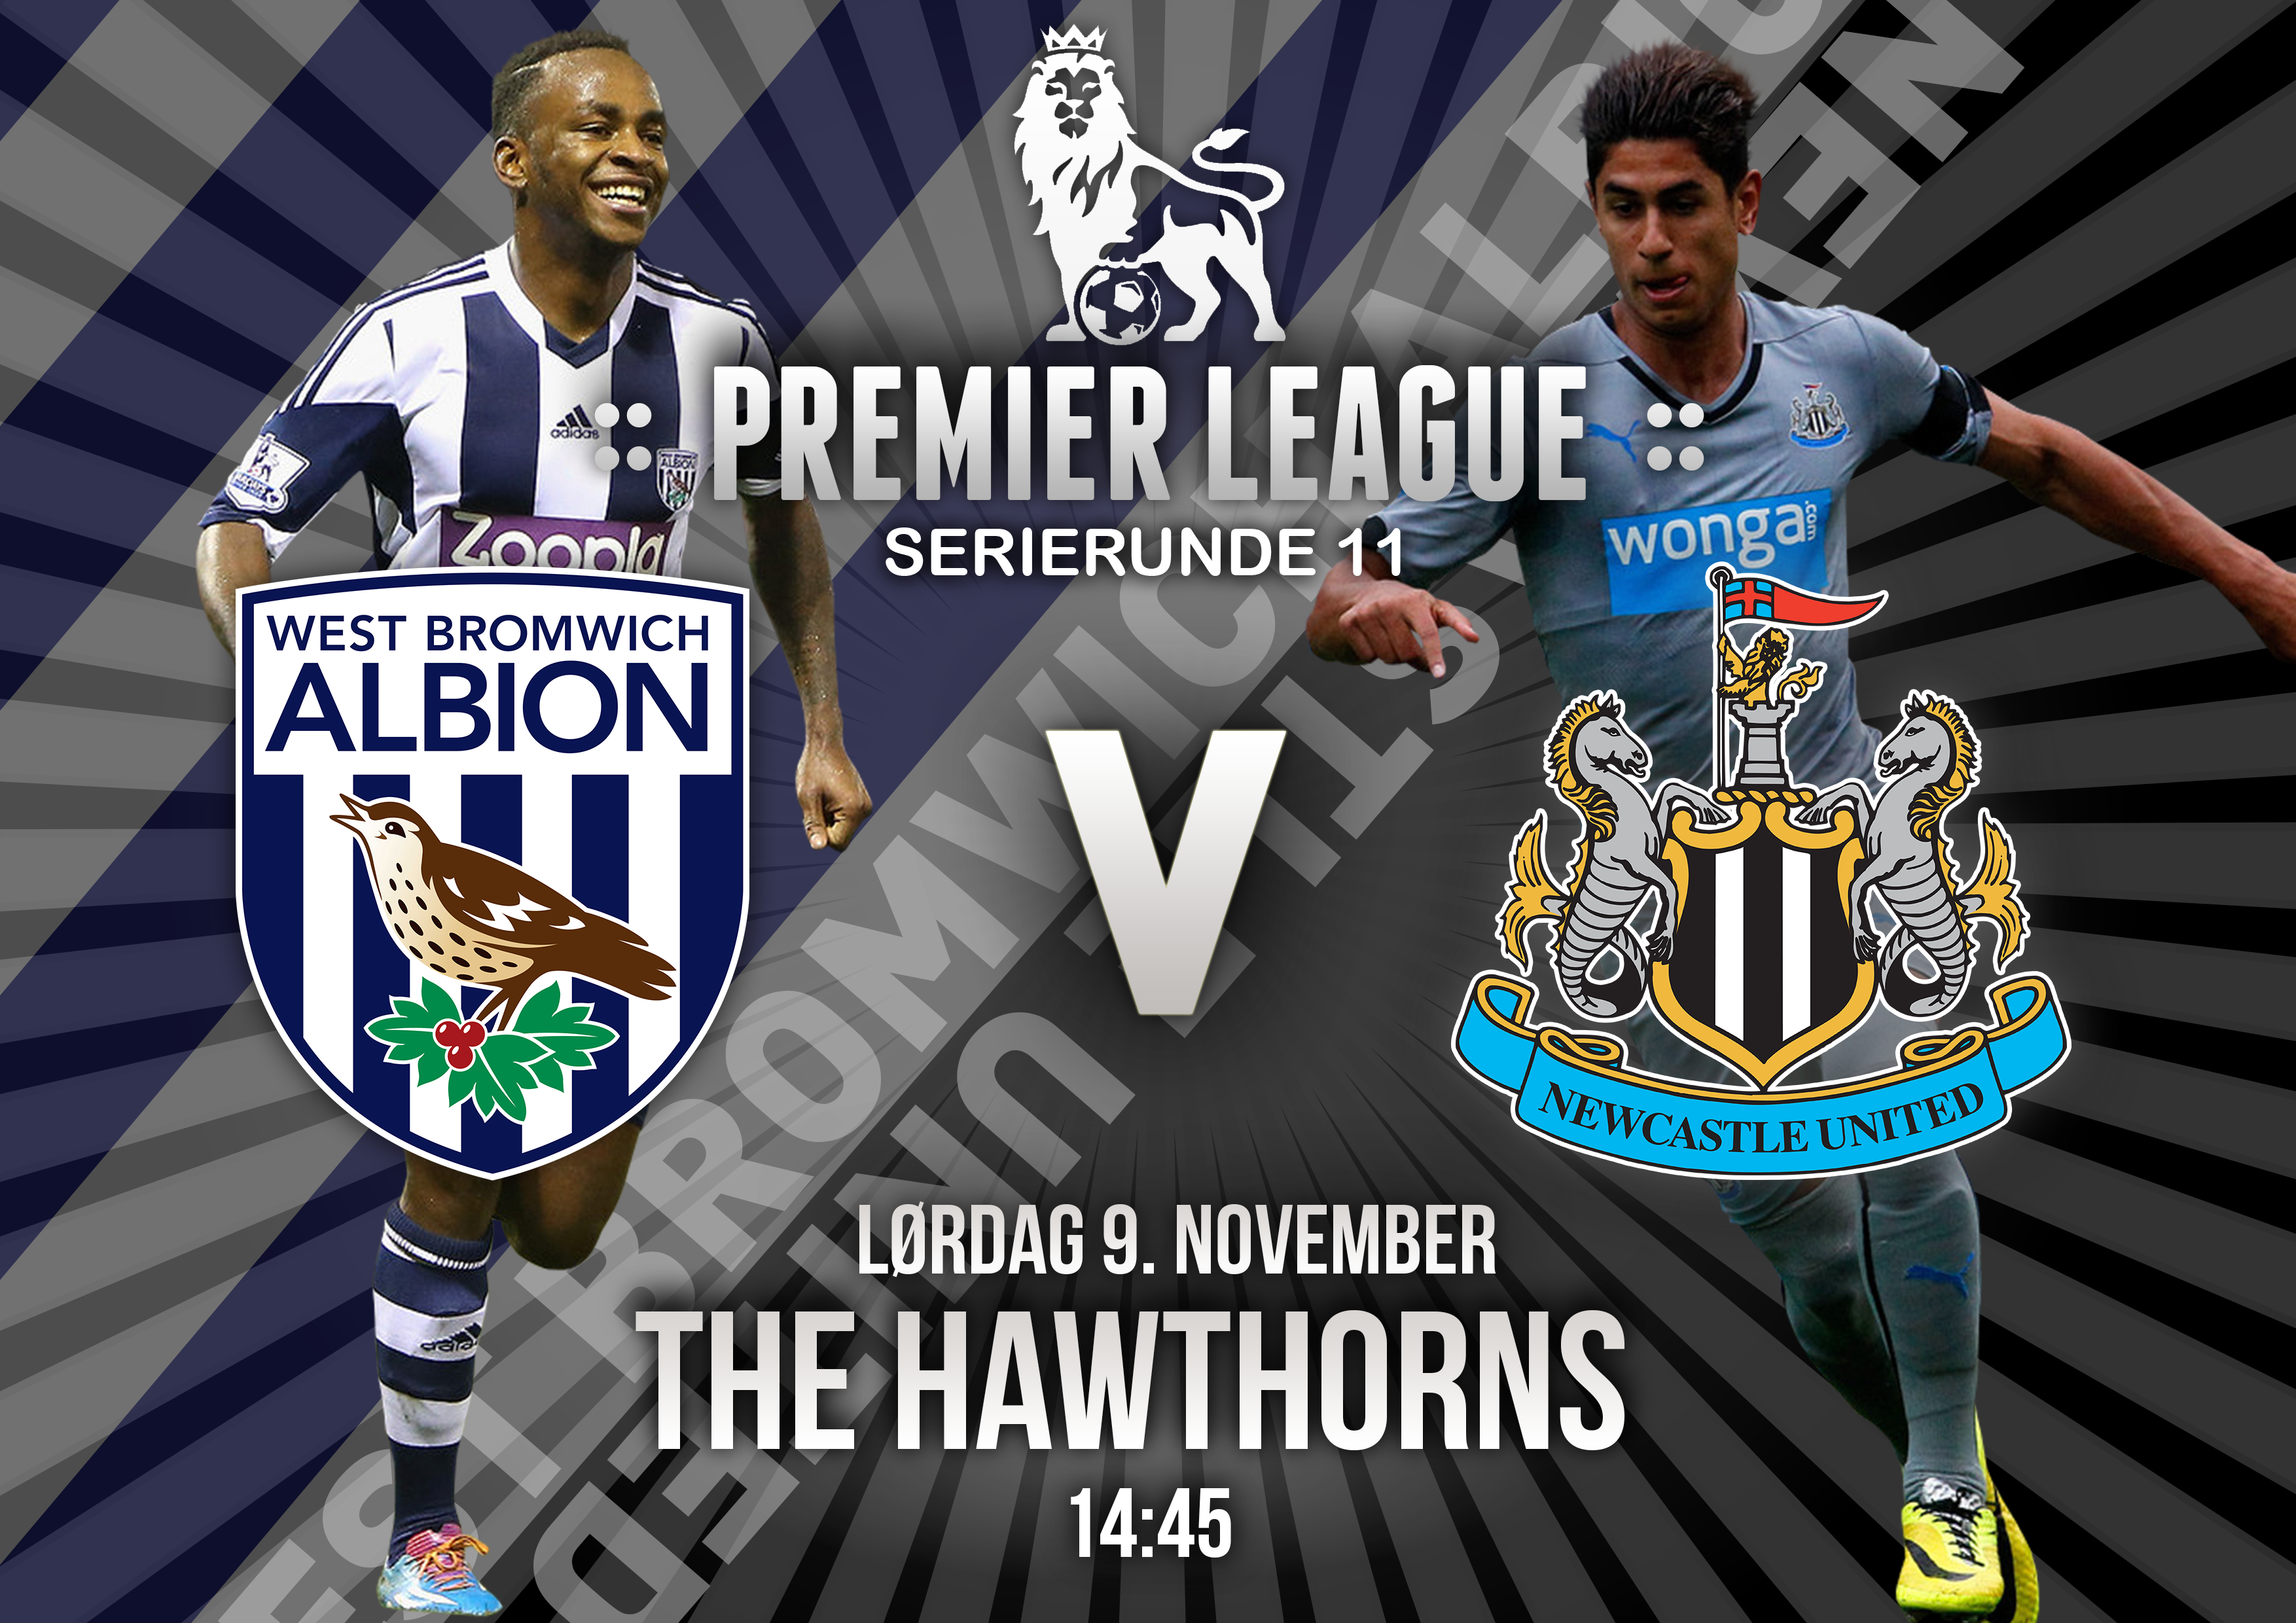 Gameweek 11 - West Bromwich Albion